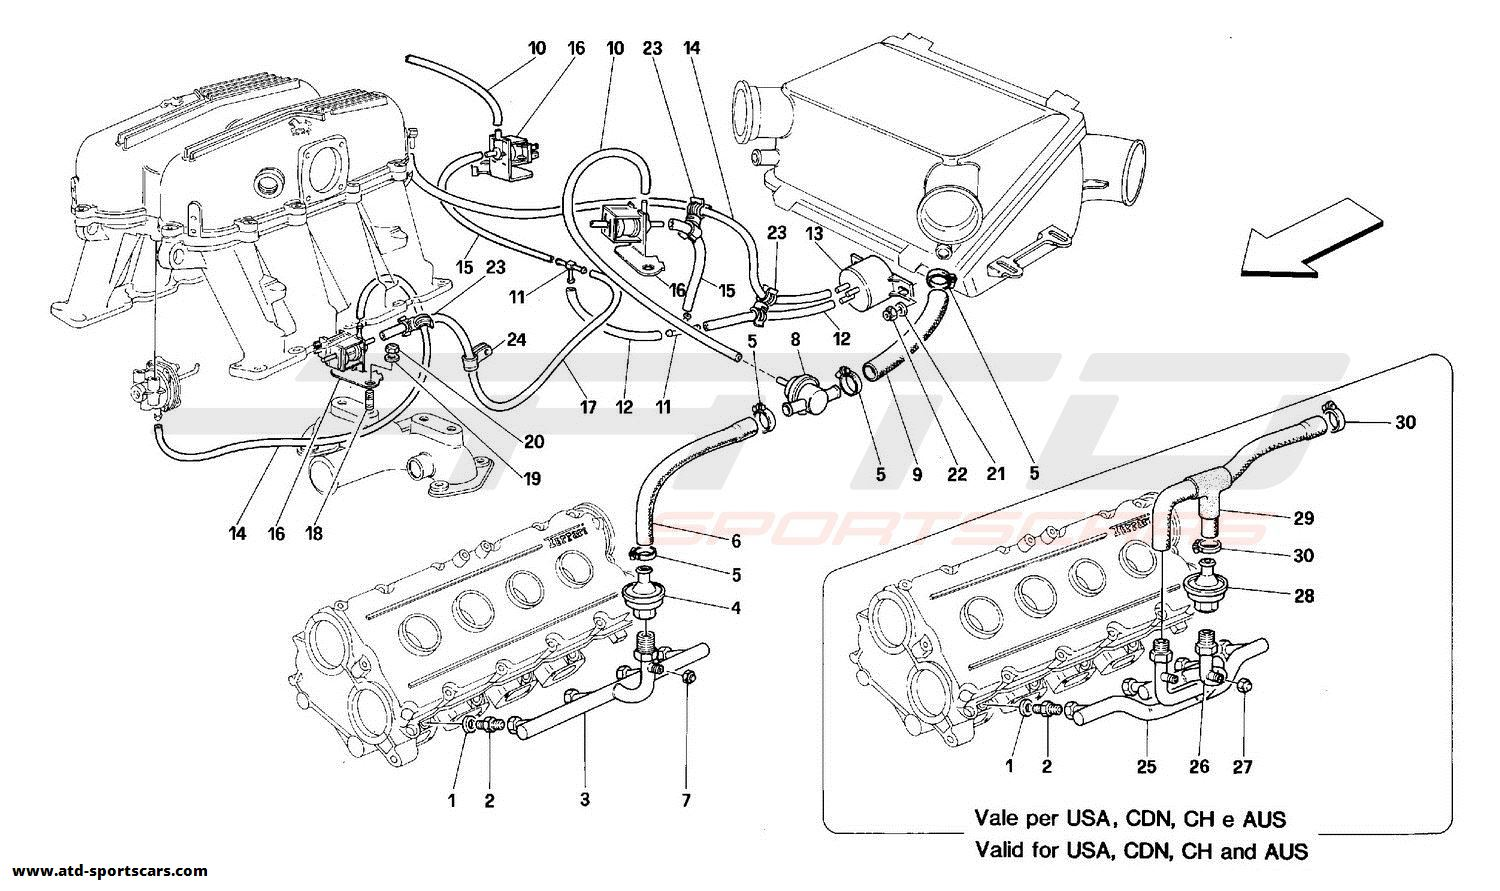 Ferrari 348 AIR INJECTION DEVICE